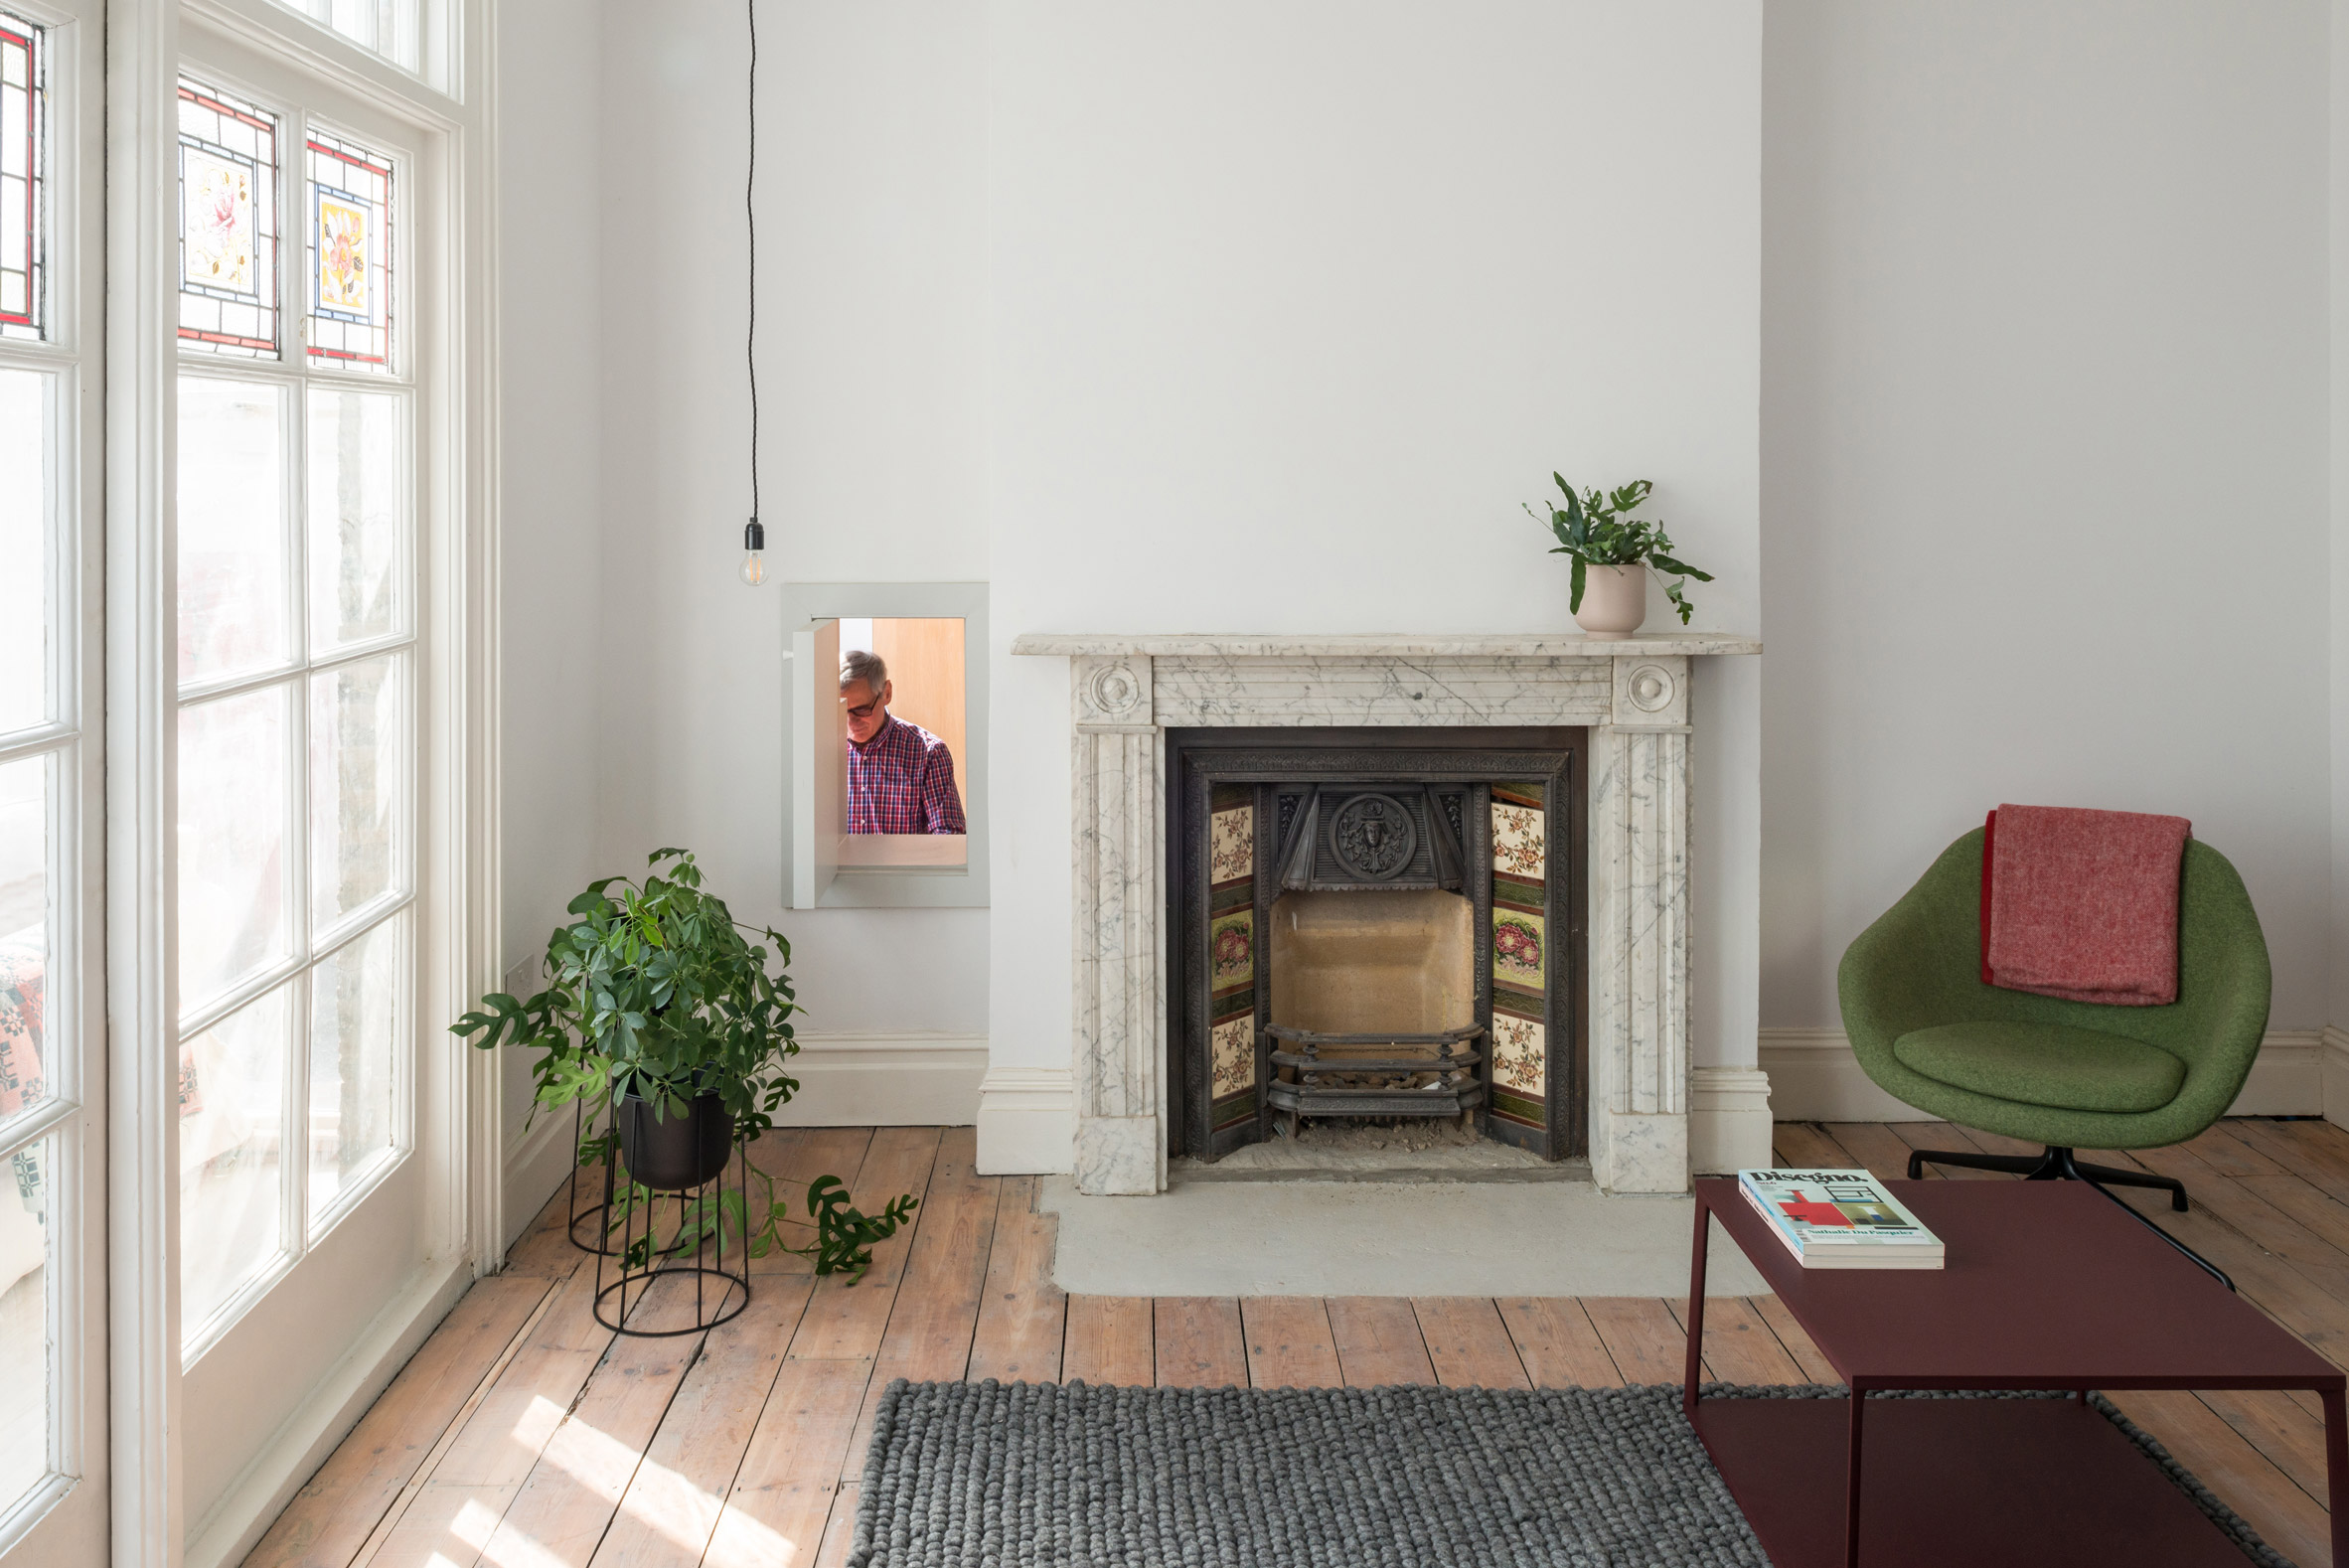 The living space employed a neutral finish